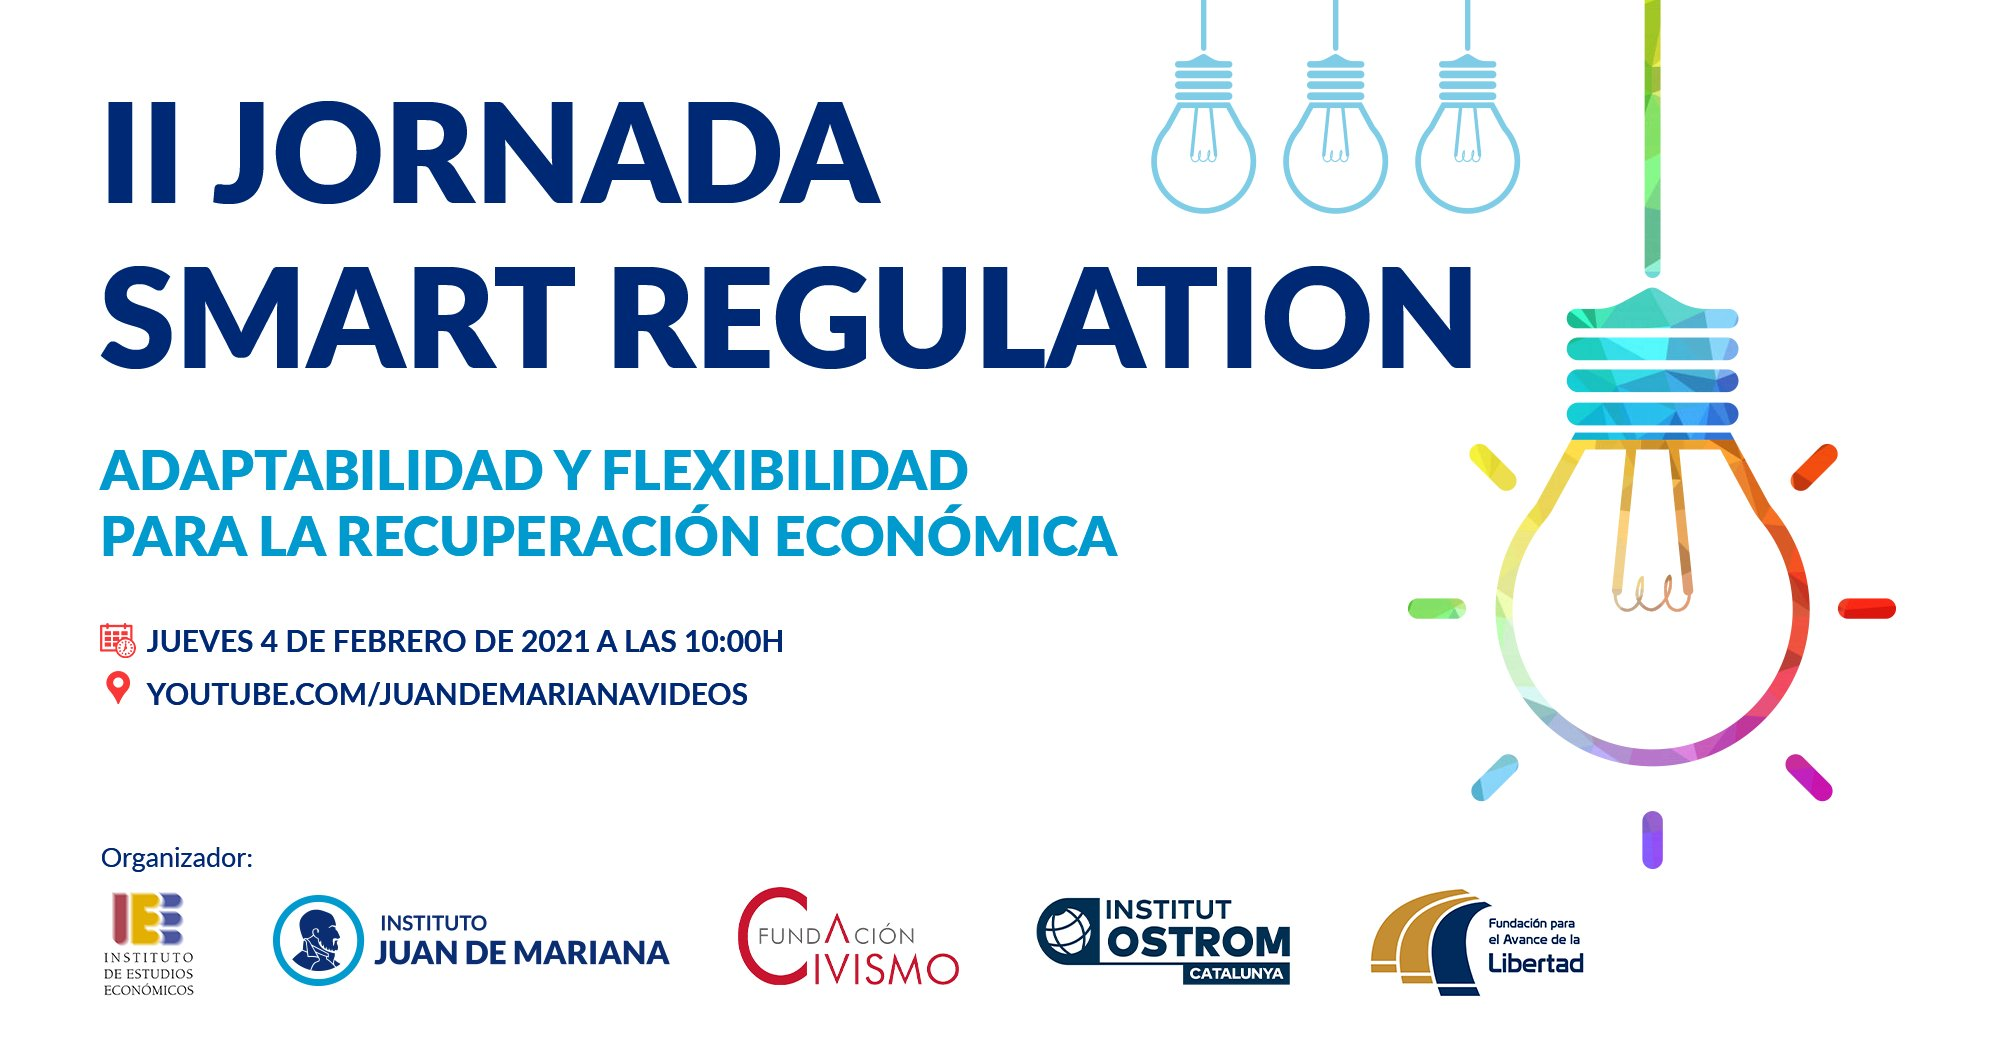 II Jornada Smart Regulation